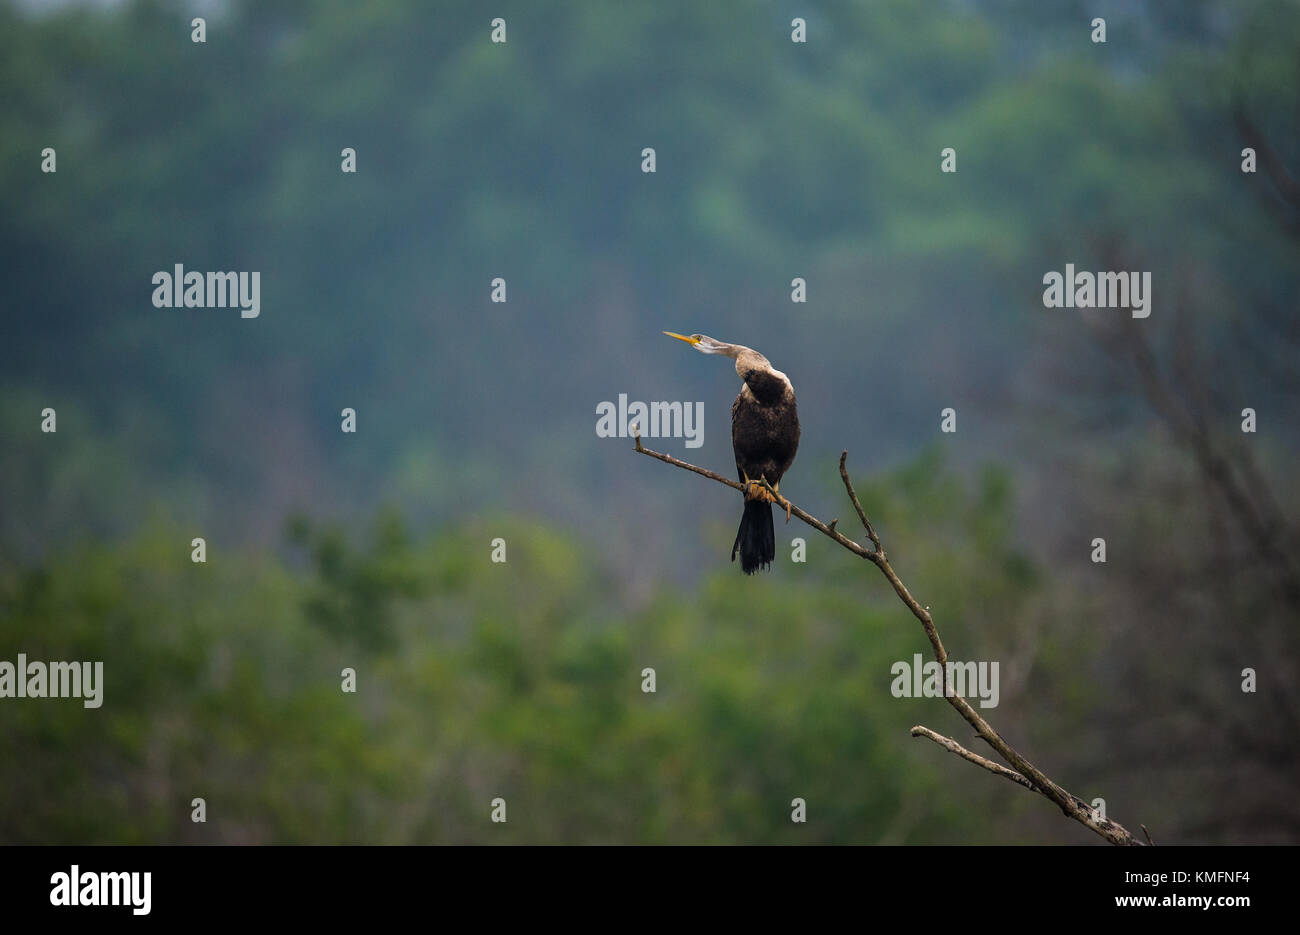 Perched Oriental Darter bird with neck out - Stock Image